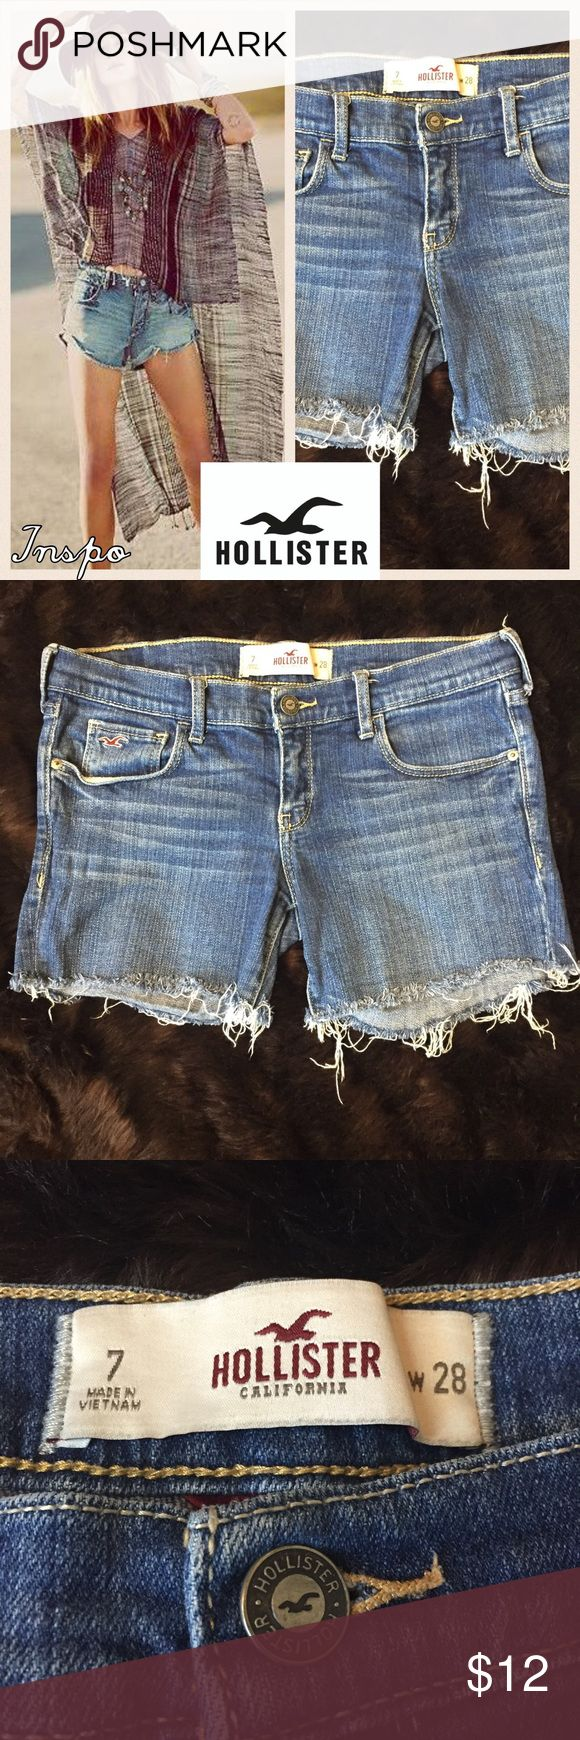 """Hollister Cutoff Denim Shorts These Hollister women's cutoff shorts are perfect for summer festivals and casual days. Size 7 / W 28. Rise - 7"""", length - 10.5"""". Excellent condition. (180) Hollister Shorts Jean Shorts"""